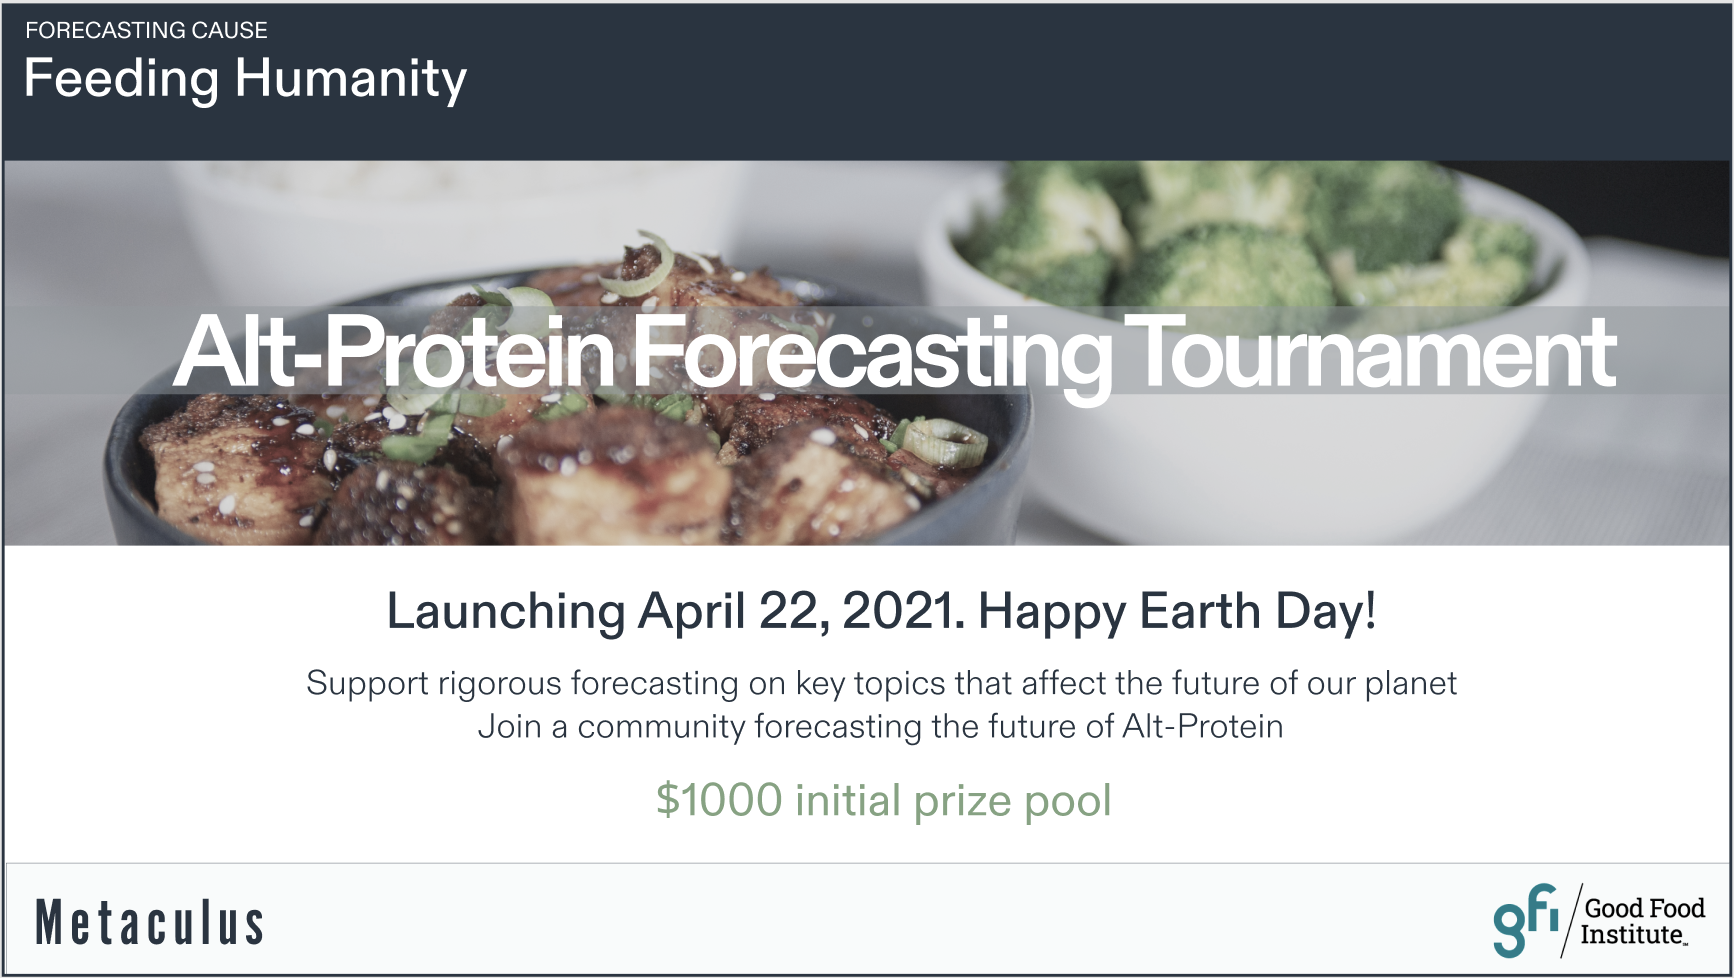 Alt-Protein Forecasting Tournament, Launching April 22, 2021. Happy Earth Day!